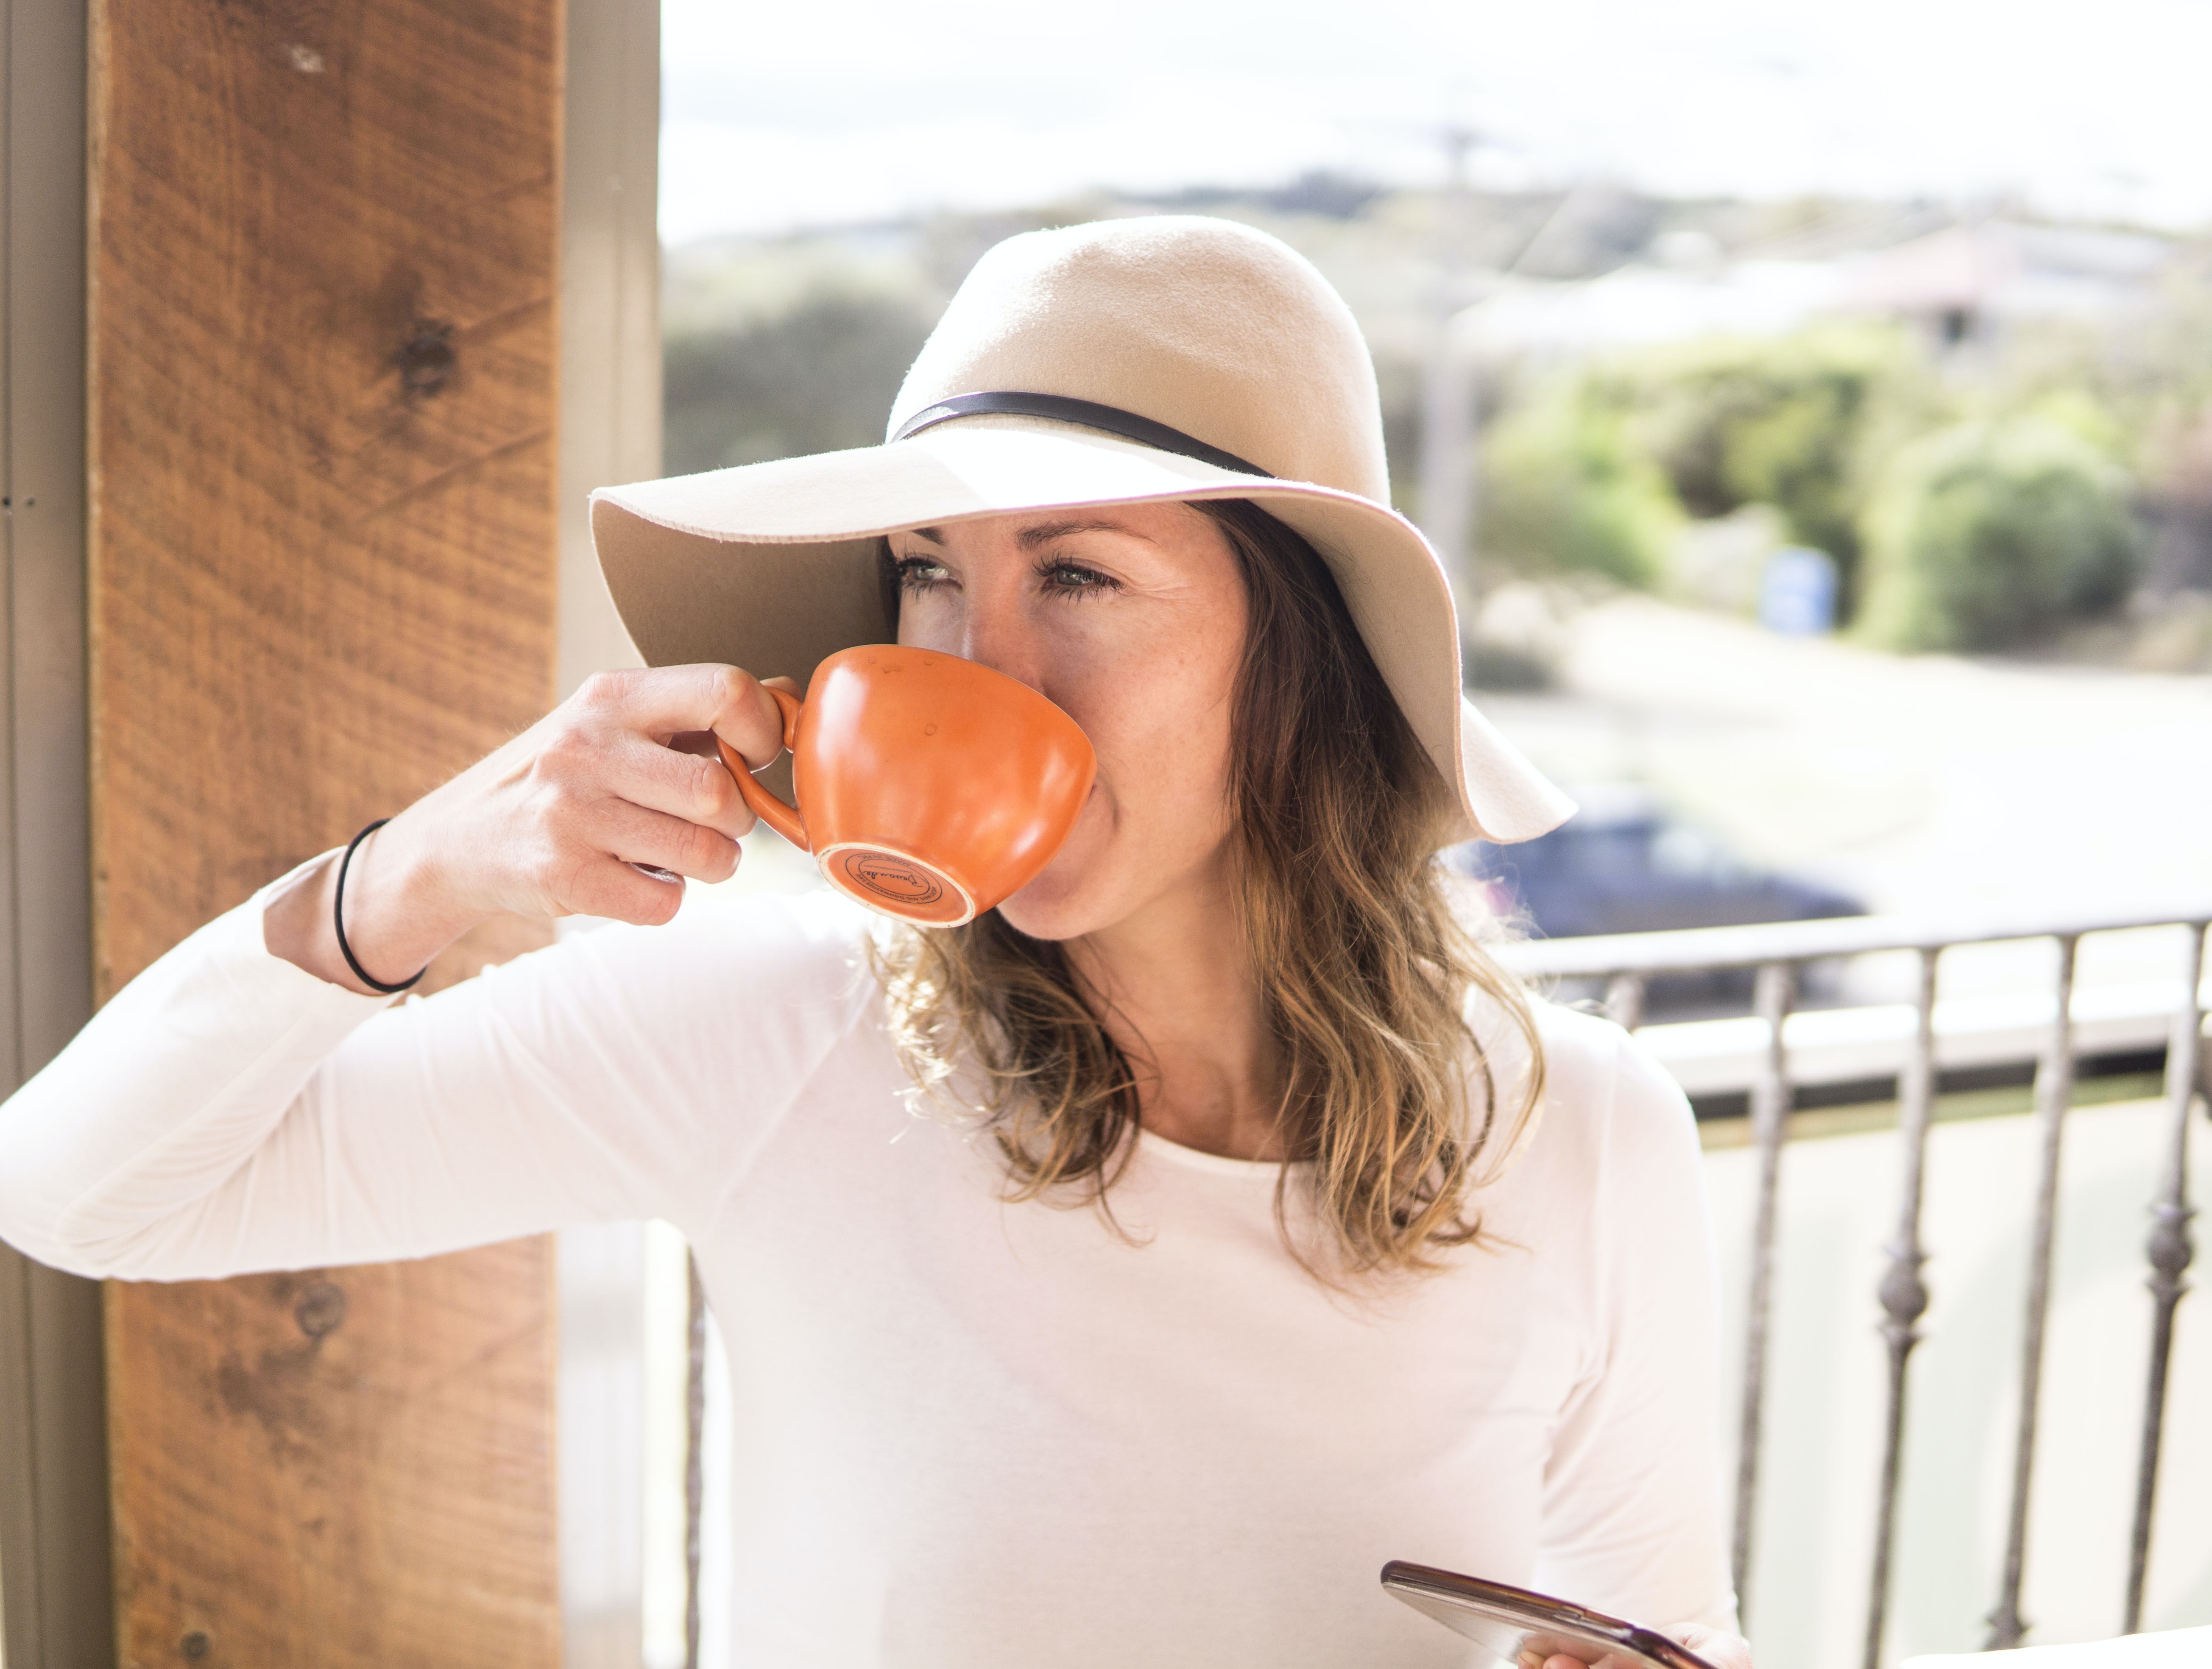 woman sipping from her orange cup